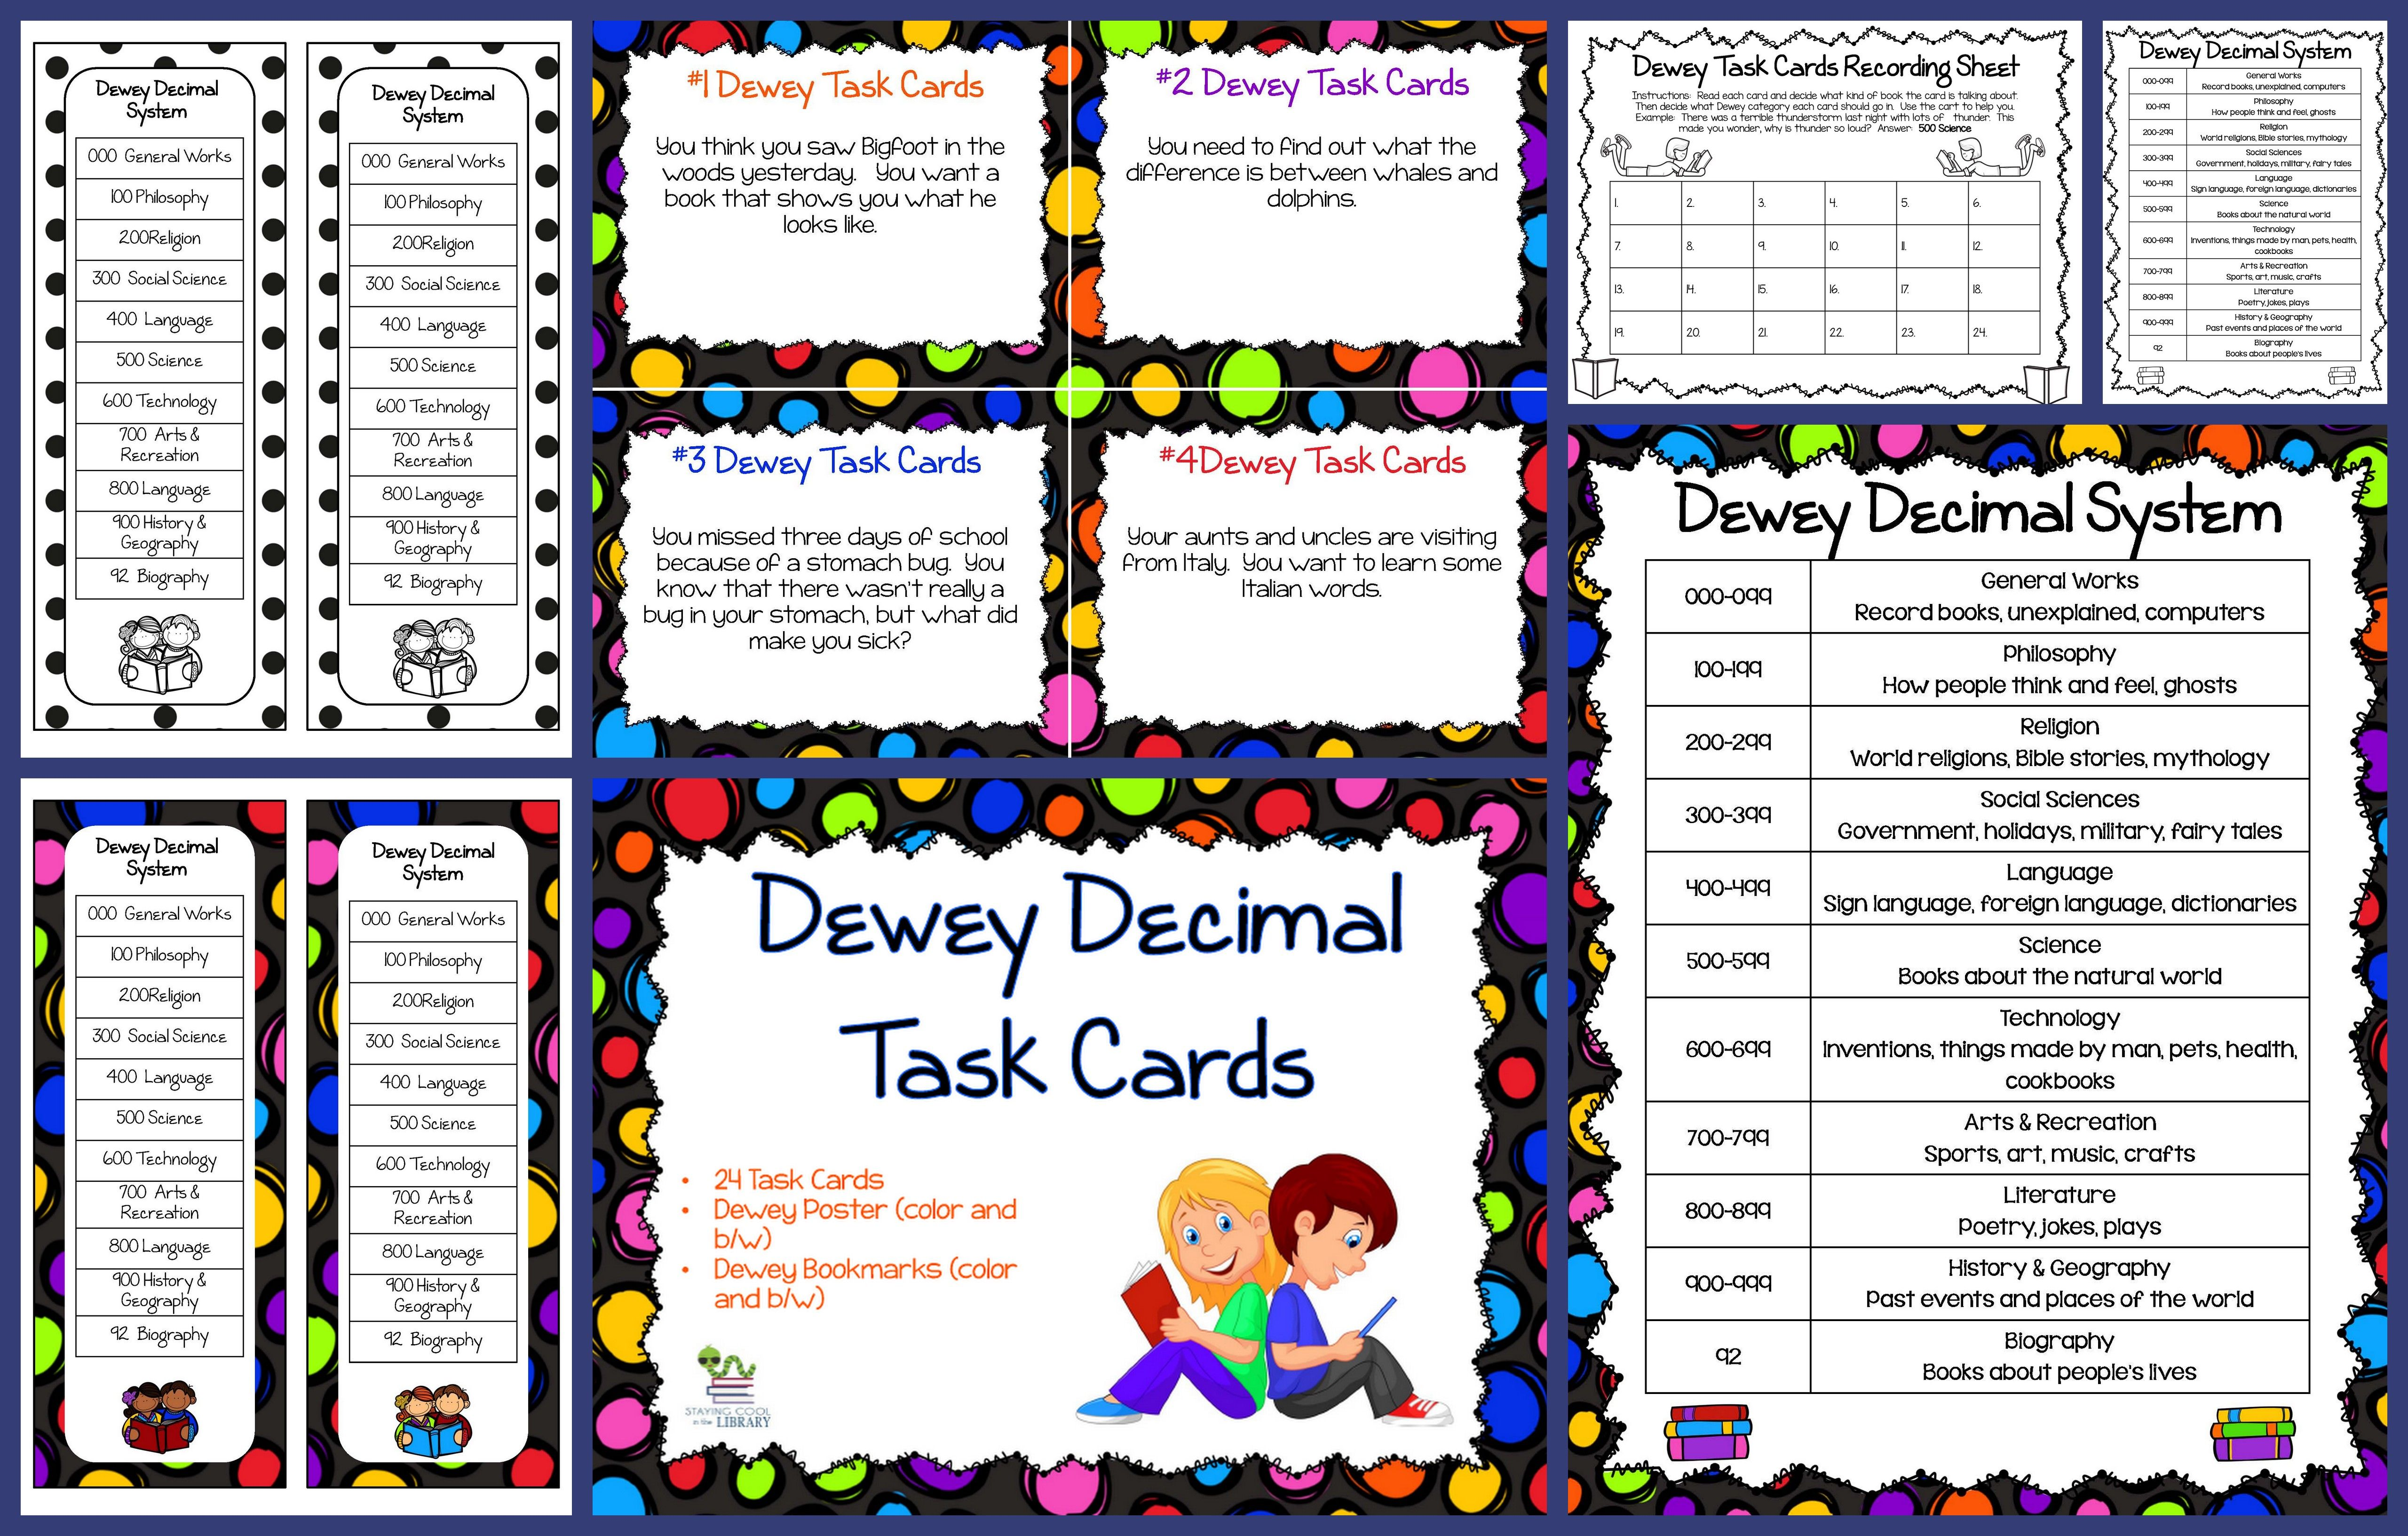 It is an image of Nerdy Dewey Decimal System Printable Bookmarks